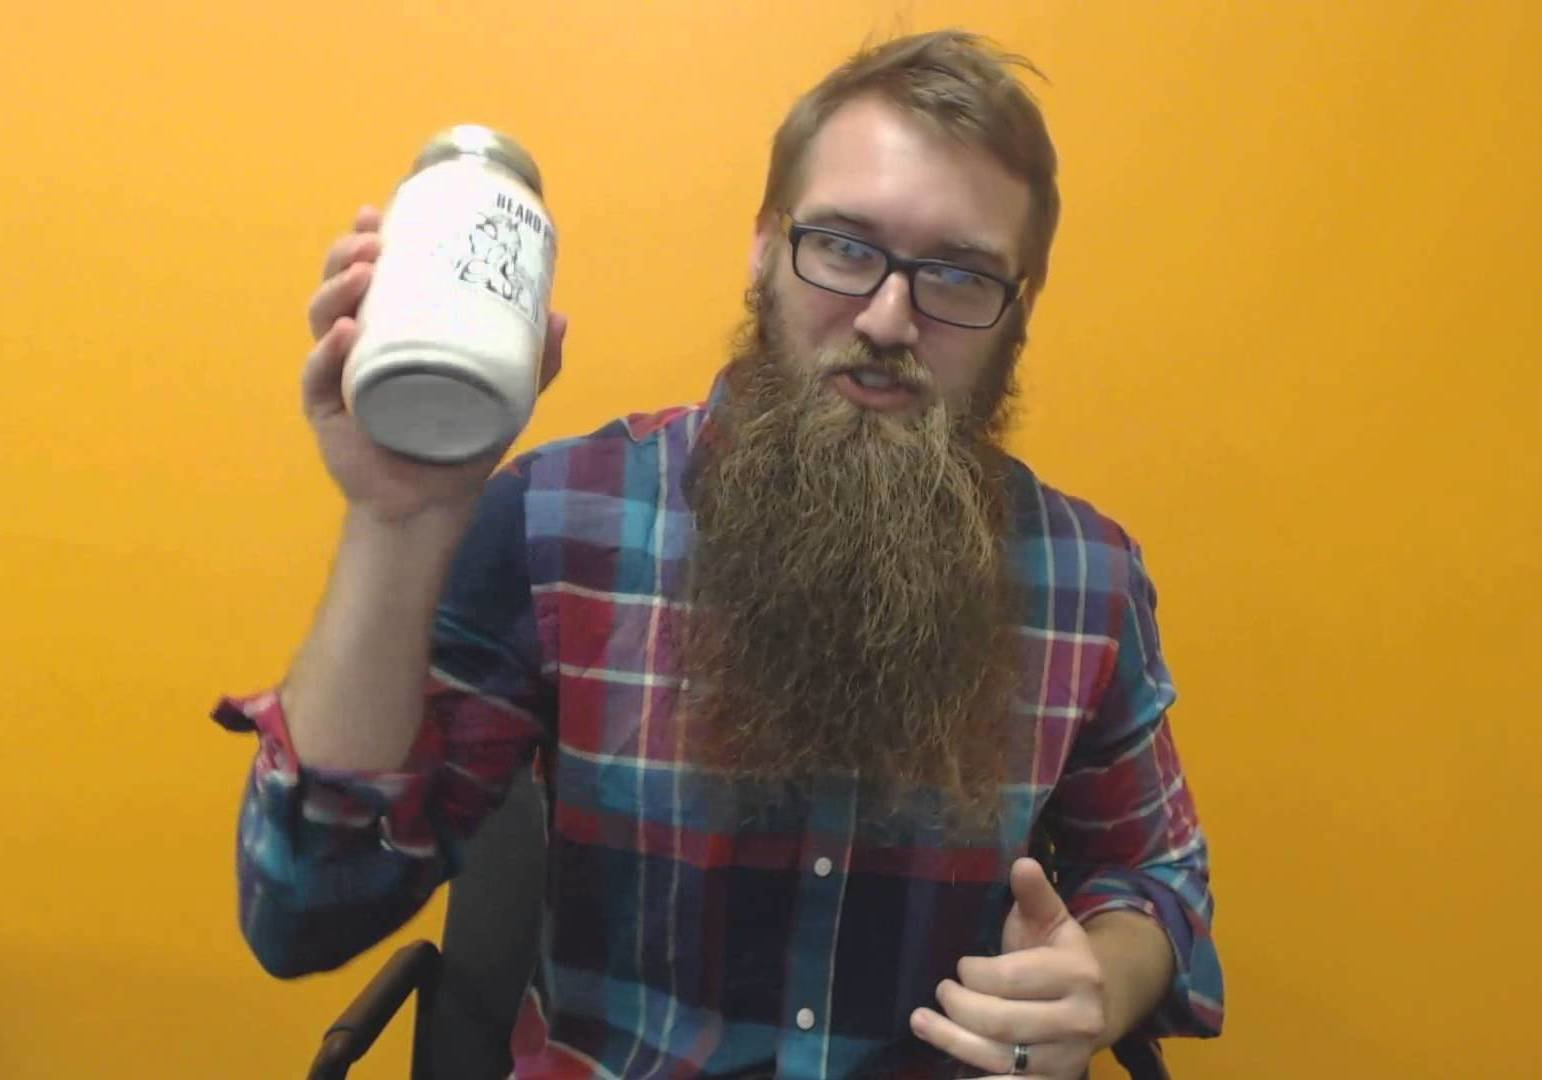 BEARD GROWTH POWDER: GENUINE OR SCAM? ~ THE MALE GROOMING REVIEW